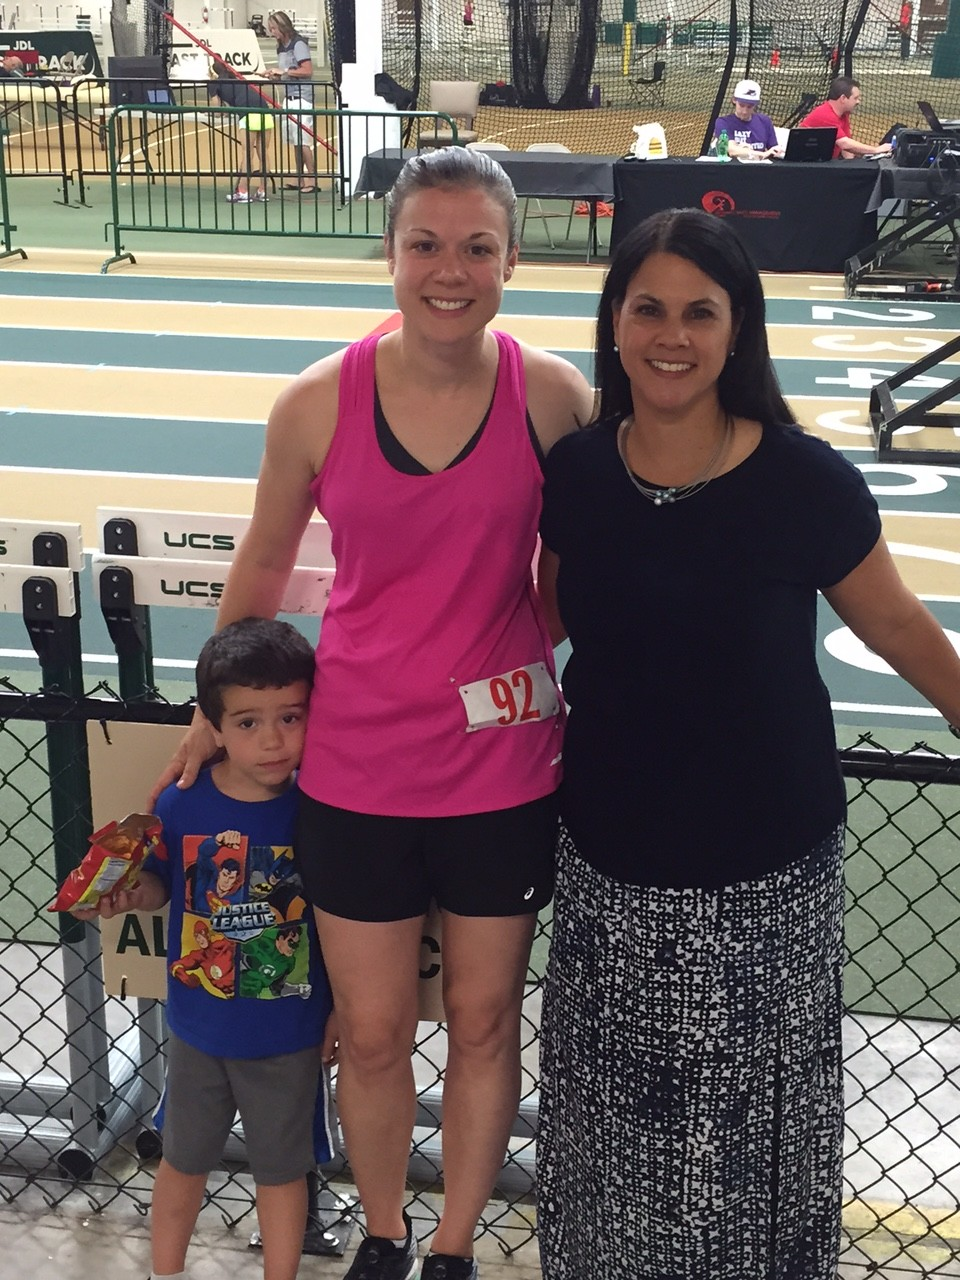 I forgot to get a pic with the fam (doh!) but I did get one with our friend TM who couldn't run this year, and Gabe :)